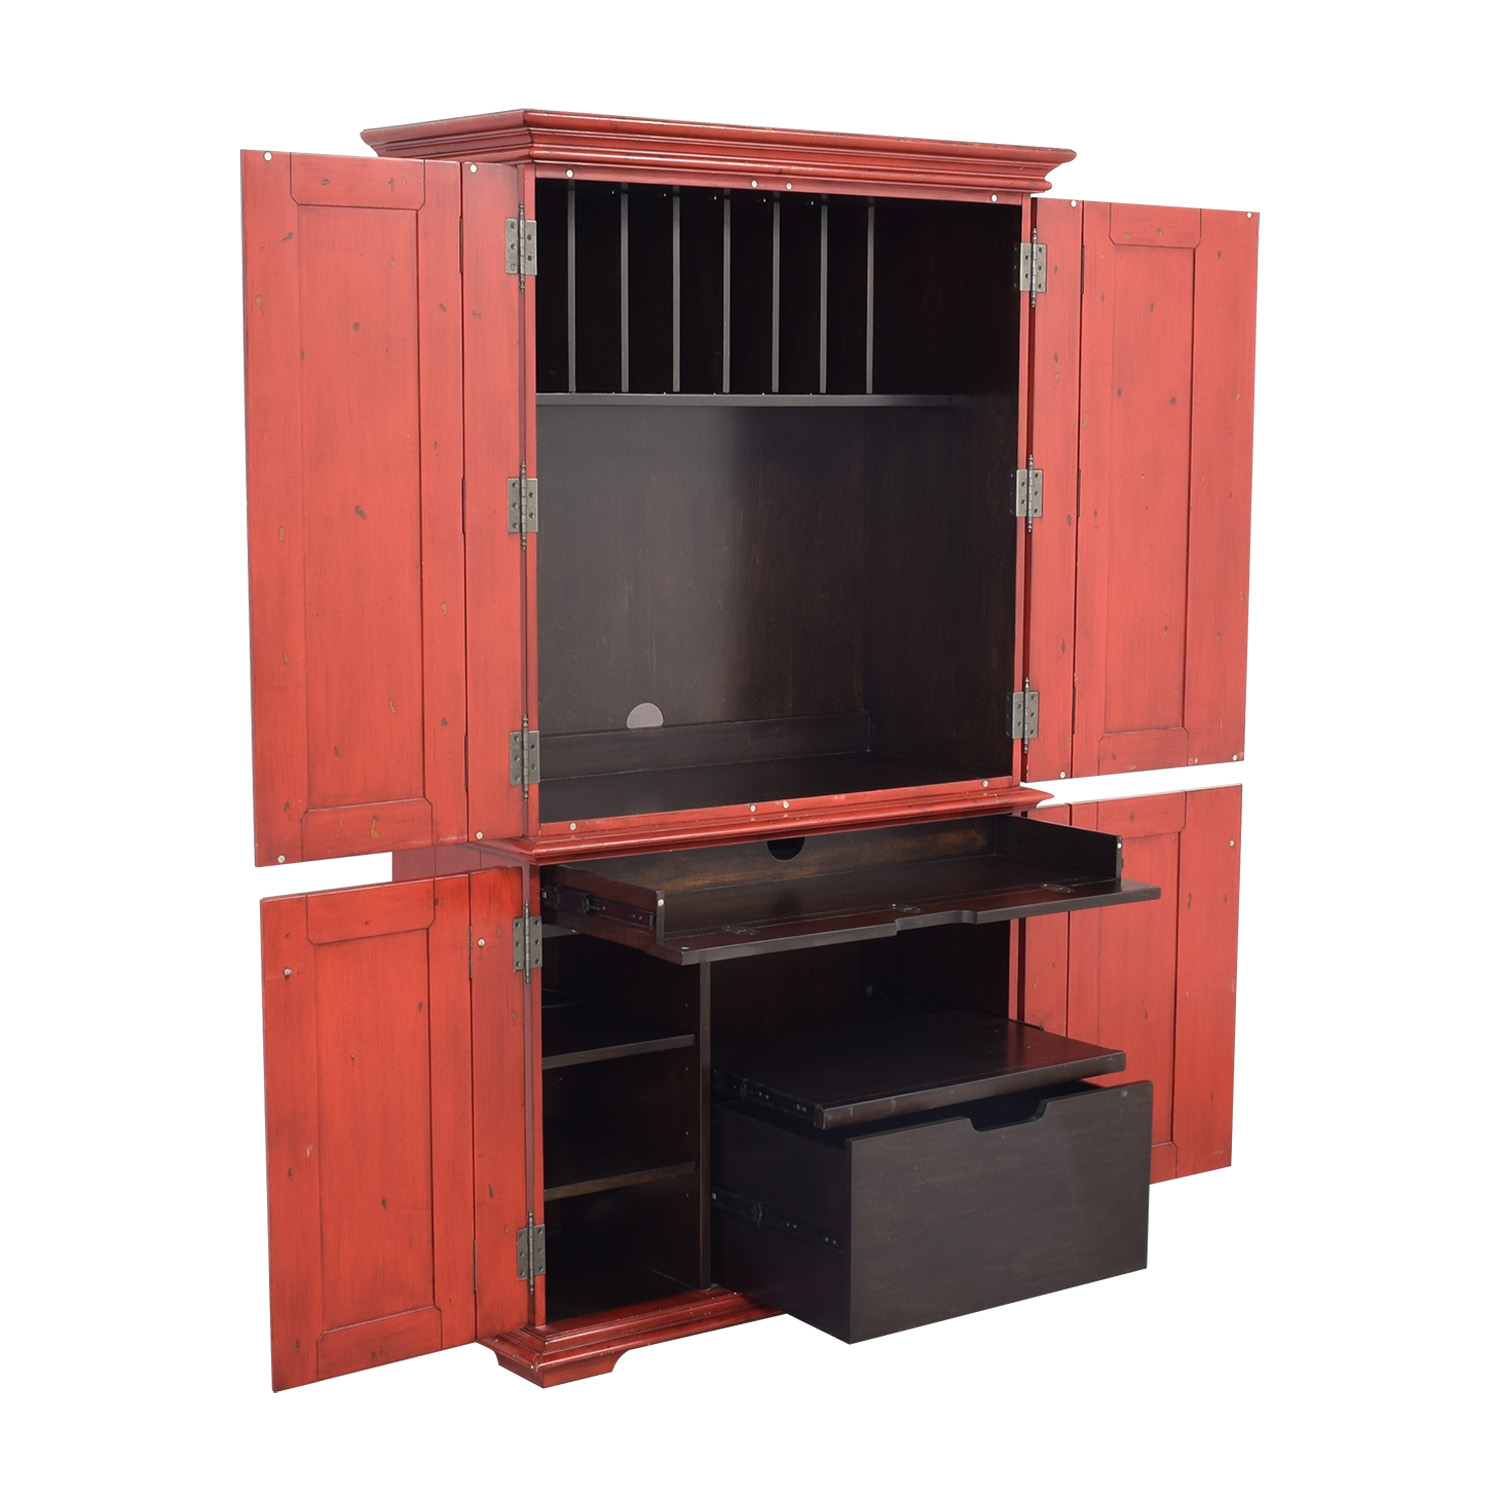 Pottery Barn Pottery Barn Campton Office Armoire with Desk for sale